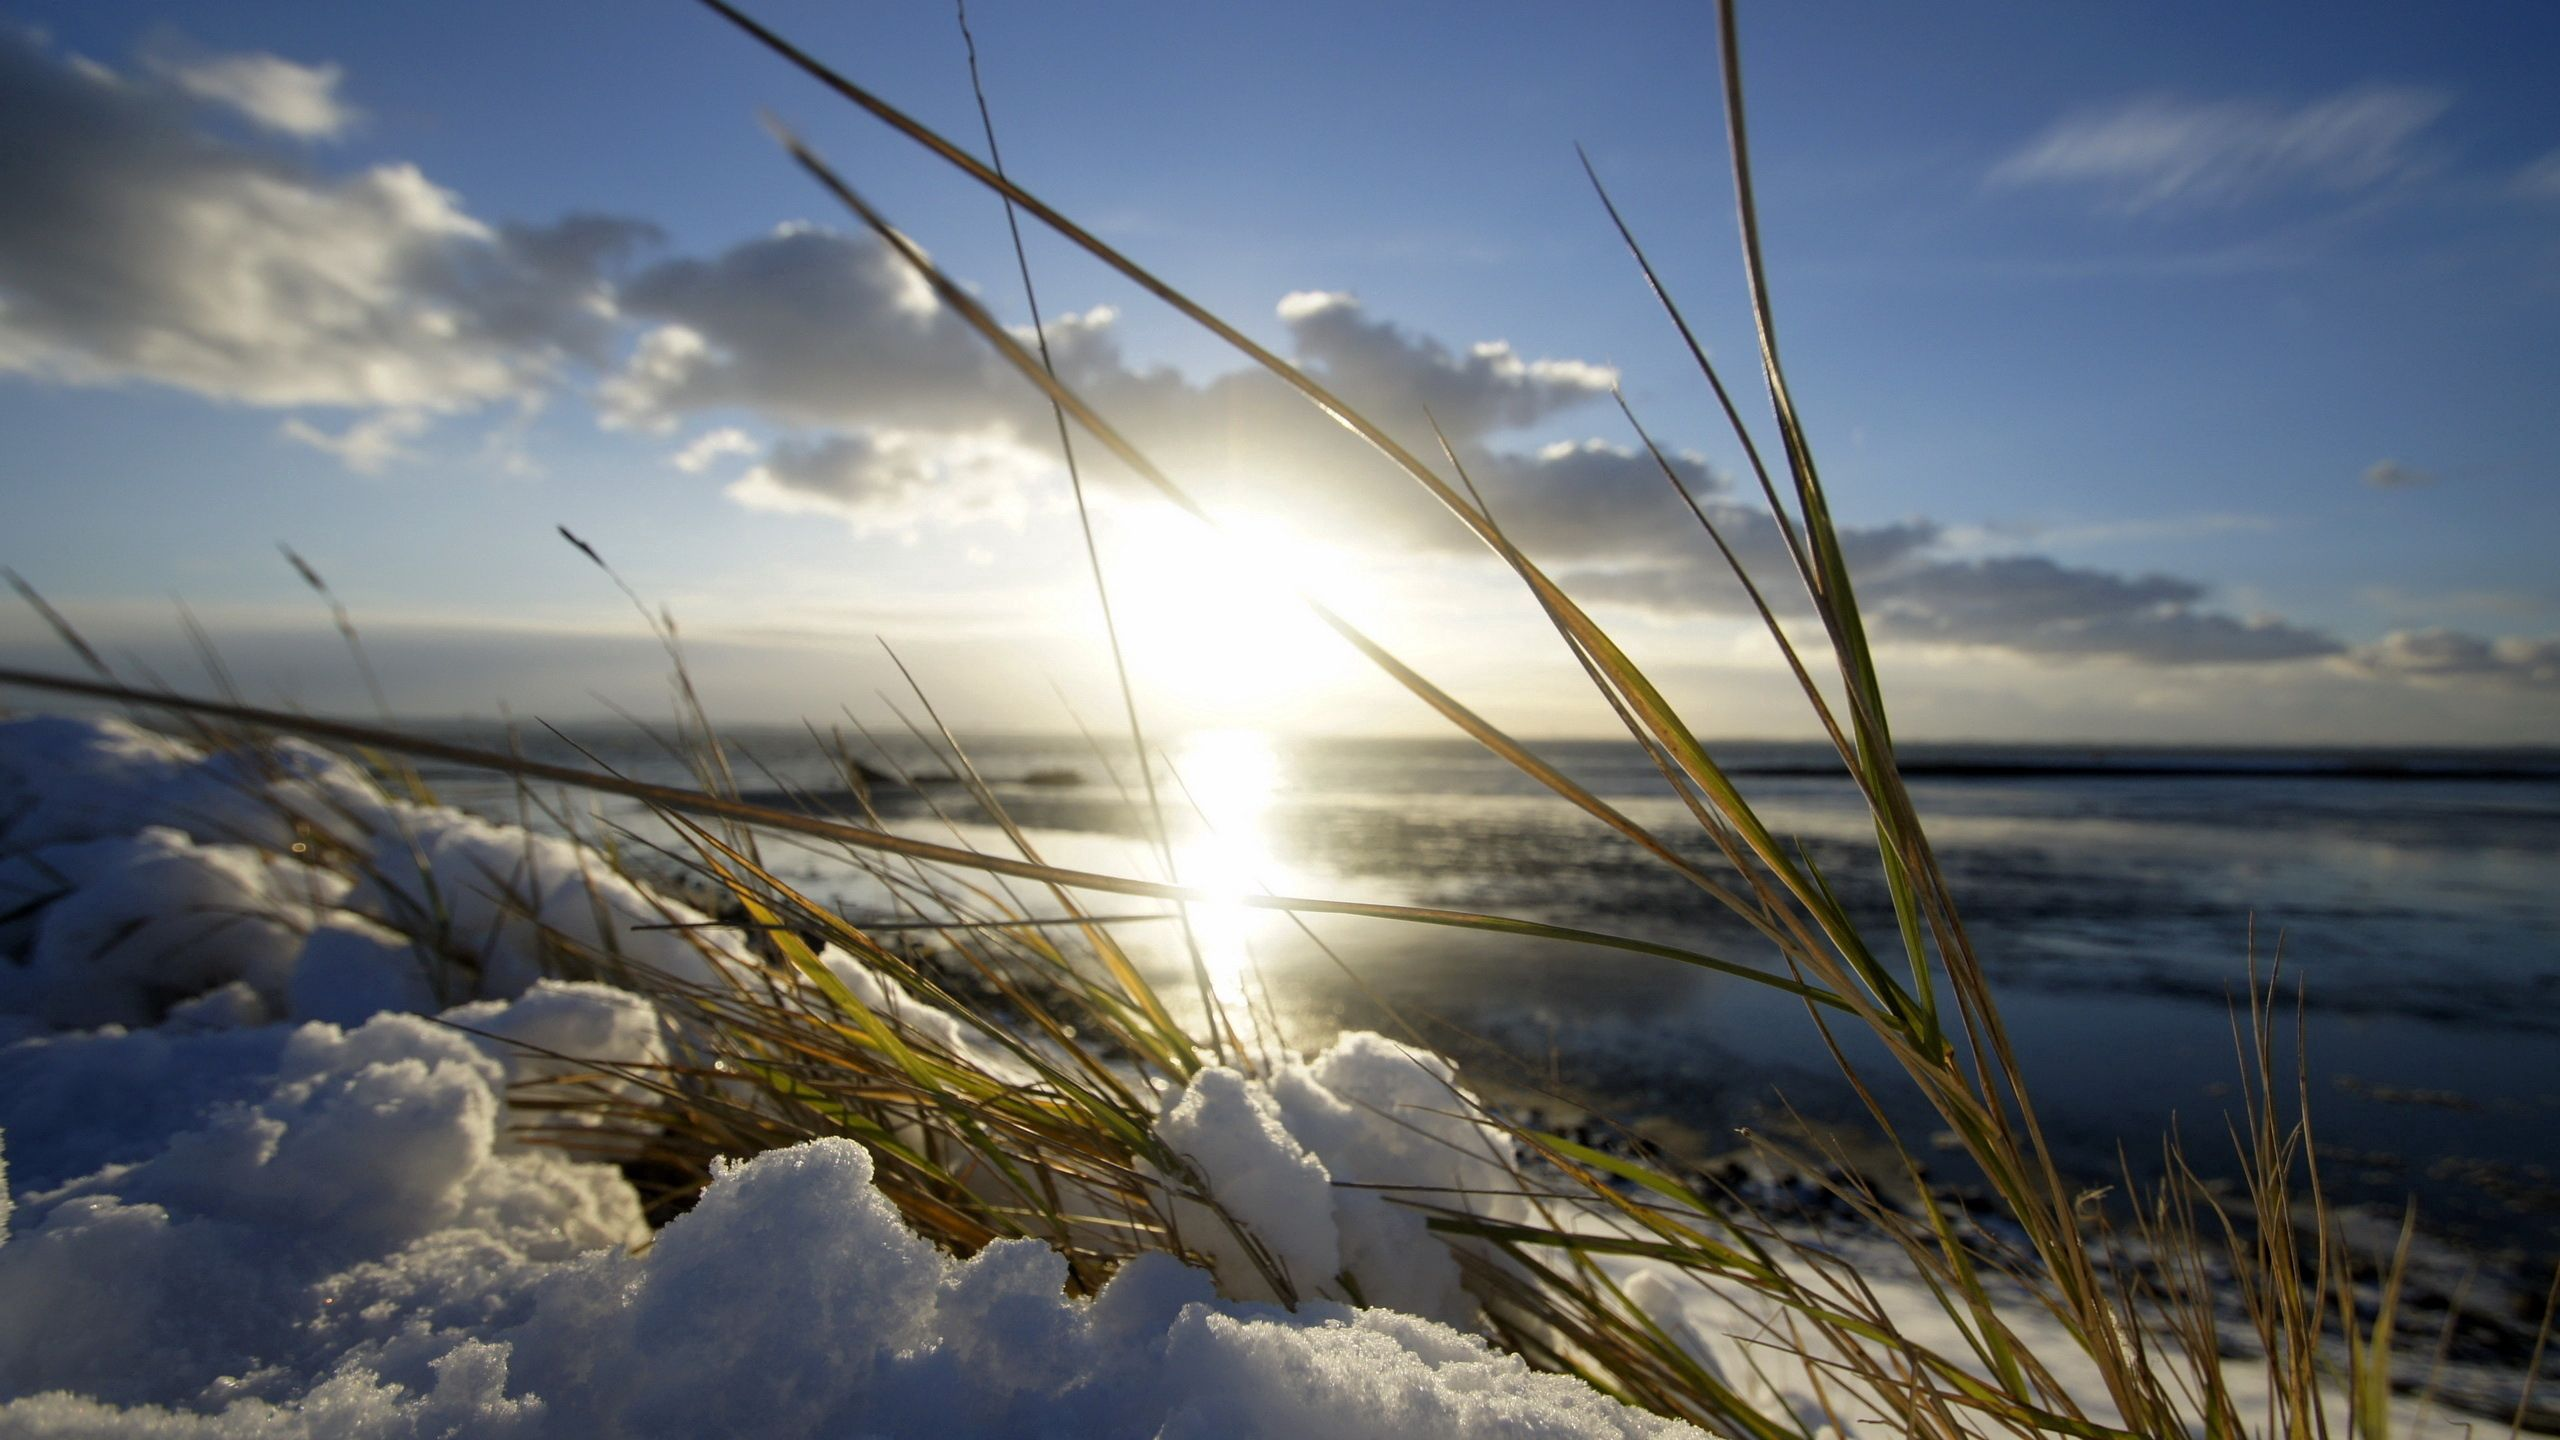 65784 download wallpaper Nature, Blade Of Grass, Blade, Shine, Light, Snow, Spring, Sun screensavers and pictures for free